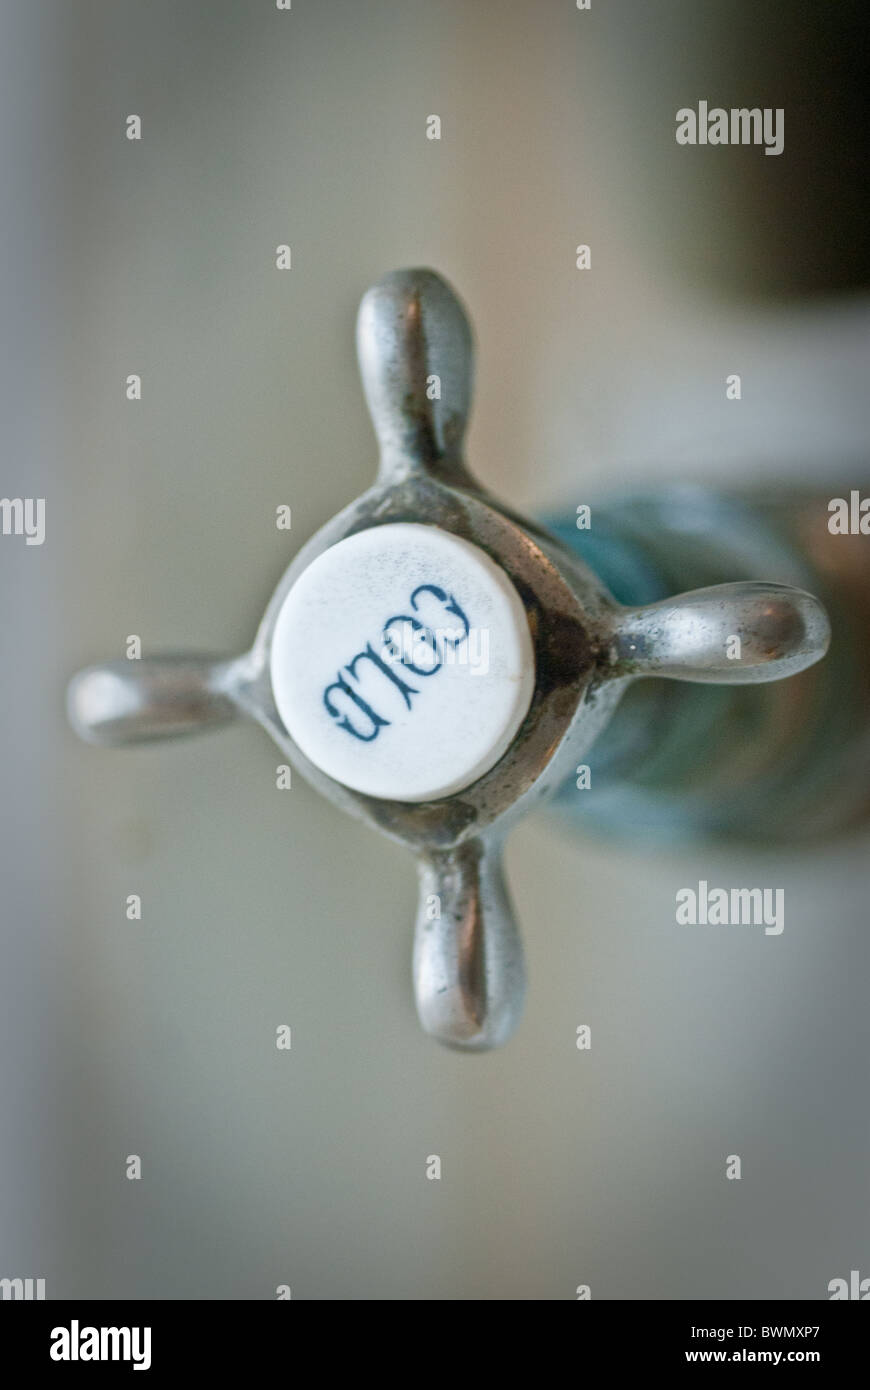 Cold tap handle - Stock Image